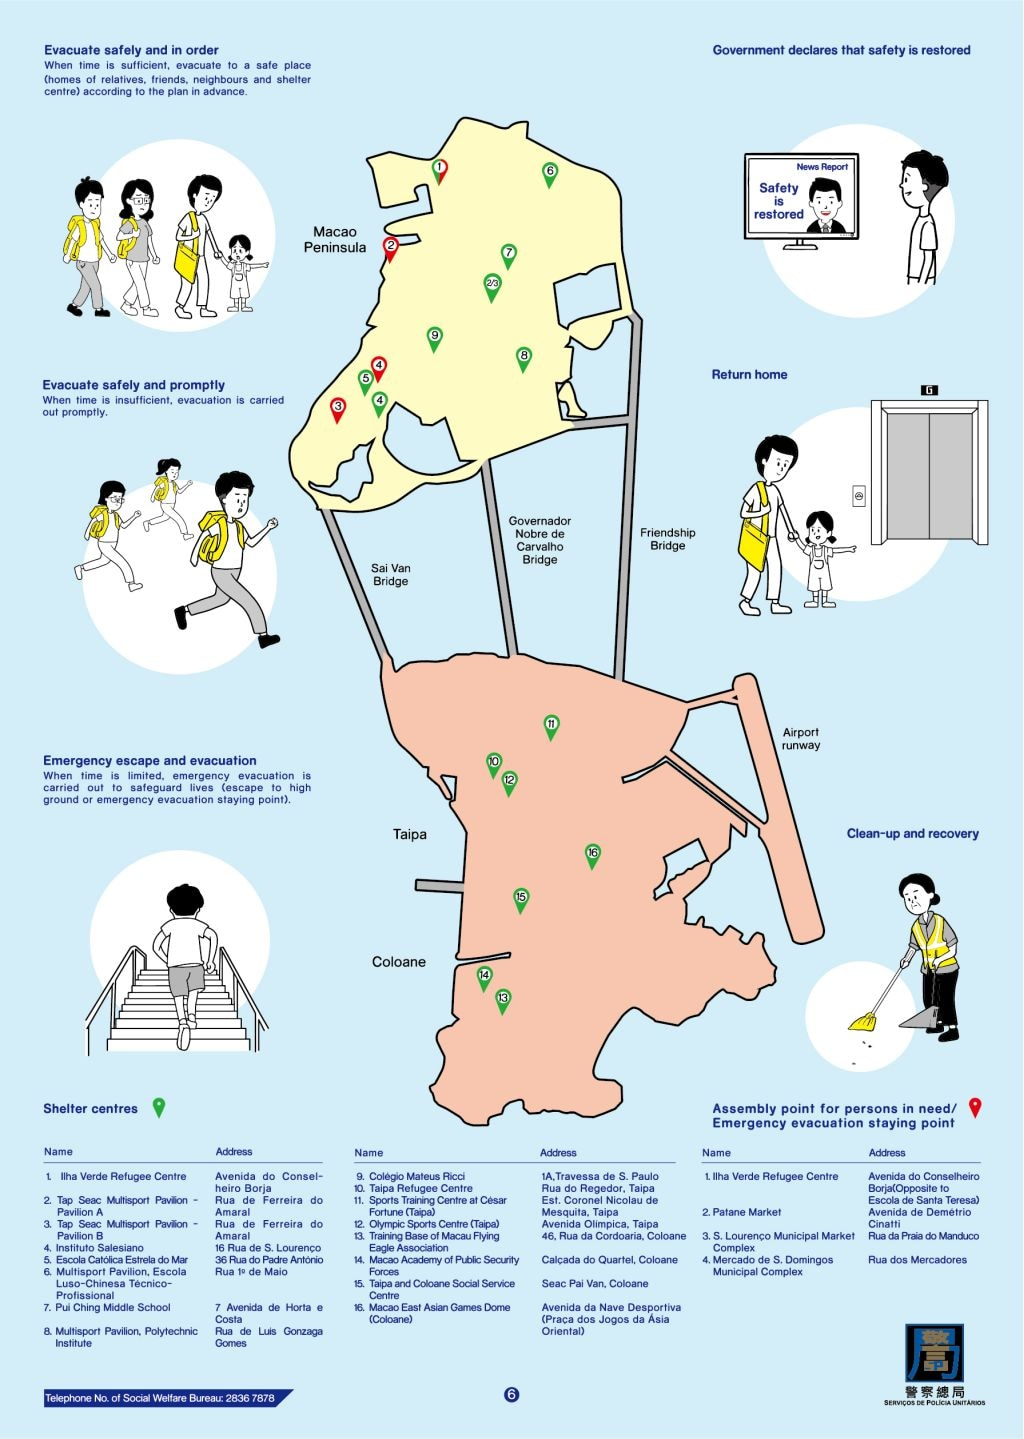 Storm surge evacuation plan in low-lying areas during typhoon